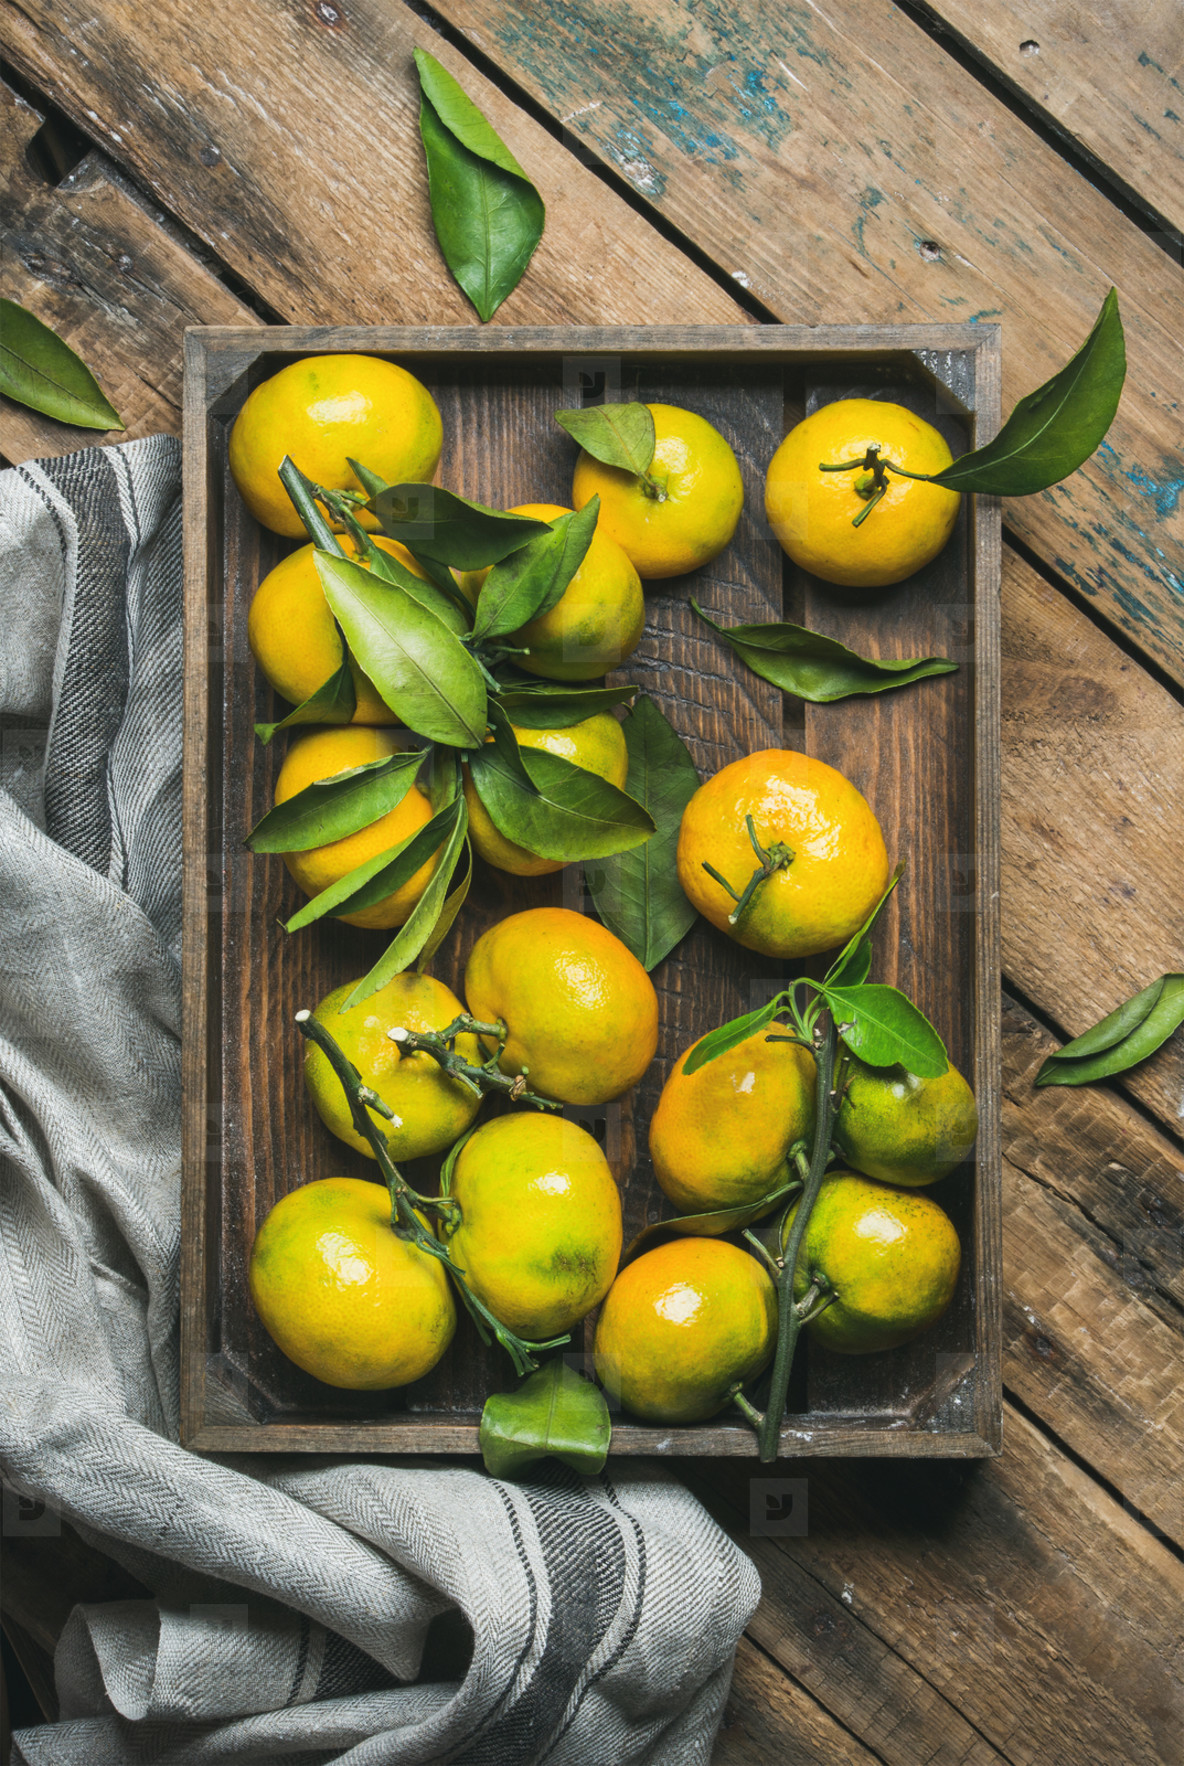 Fresh picked Mediterranean tangerines with green leaves in crate